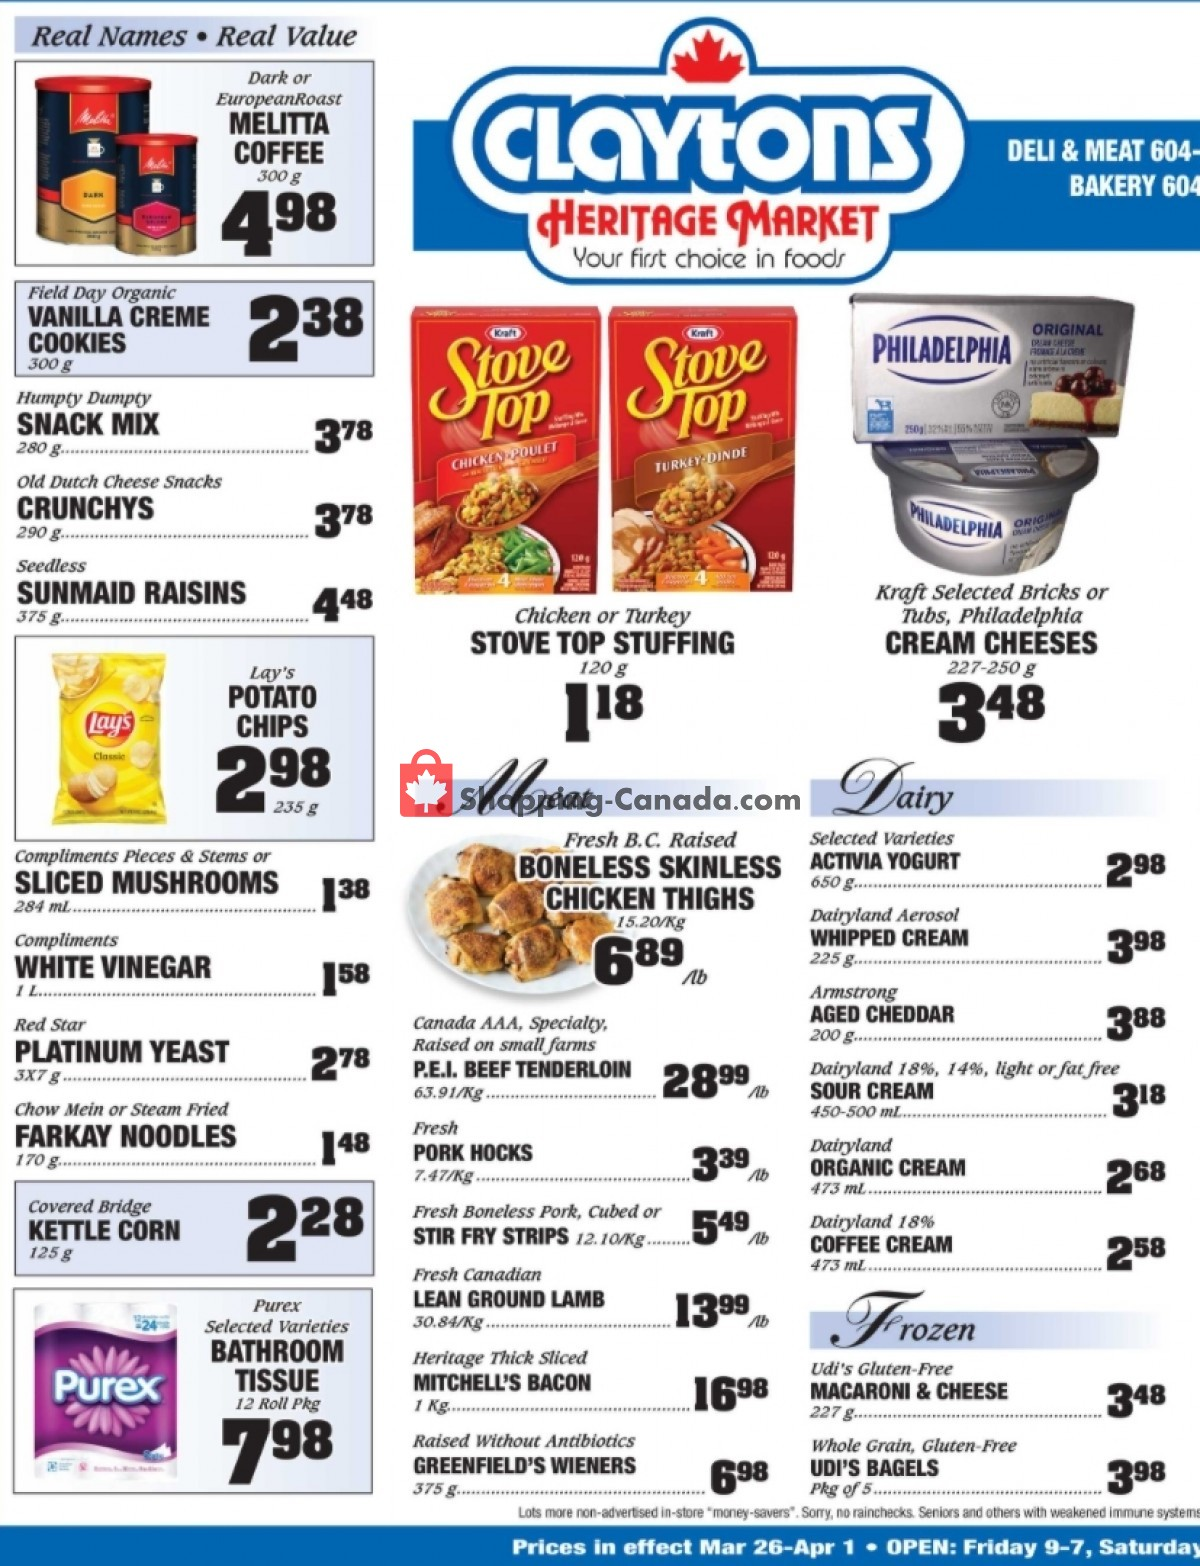 Flyer Claytons Heritage Market Canada - from Friday March 26, 2021 to Thursday April 1, 2021